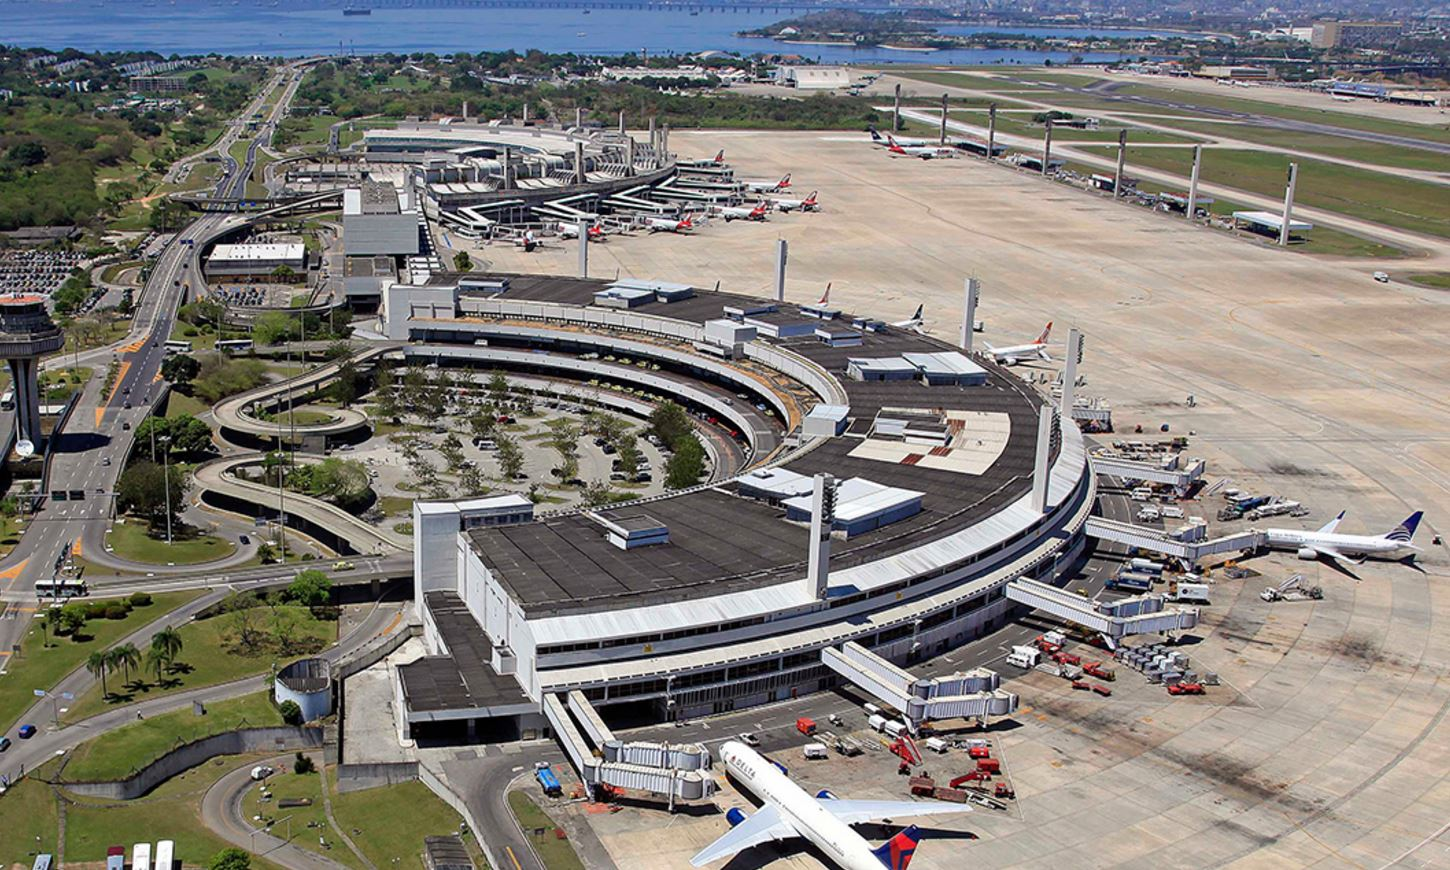 drone innovation with Record Cargo Year For Singapores Changi Airport on 17 Year Old Indian Origin Entrepreneur Features In Forbes List 23602 additionally Typhoon H Overview moreover Video Innovation Le Sous Marin Volant De La Rutgers University additionally Saudi Arabia Announces Plans 380 Billion City Neom further Royalty Free Stock Photo Future  mercial Drones Infographics Covering In ing Image37108895.